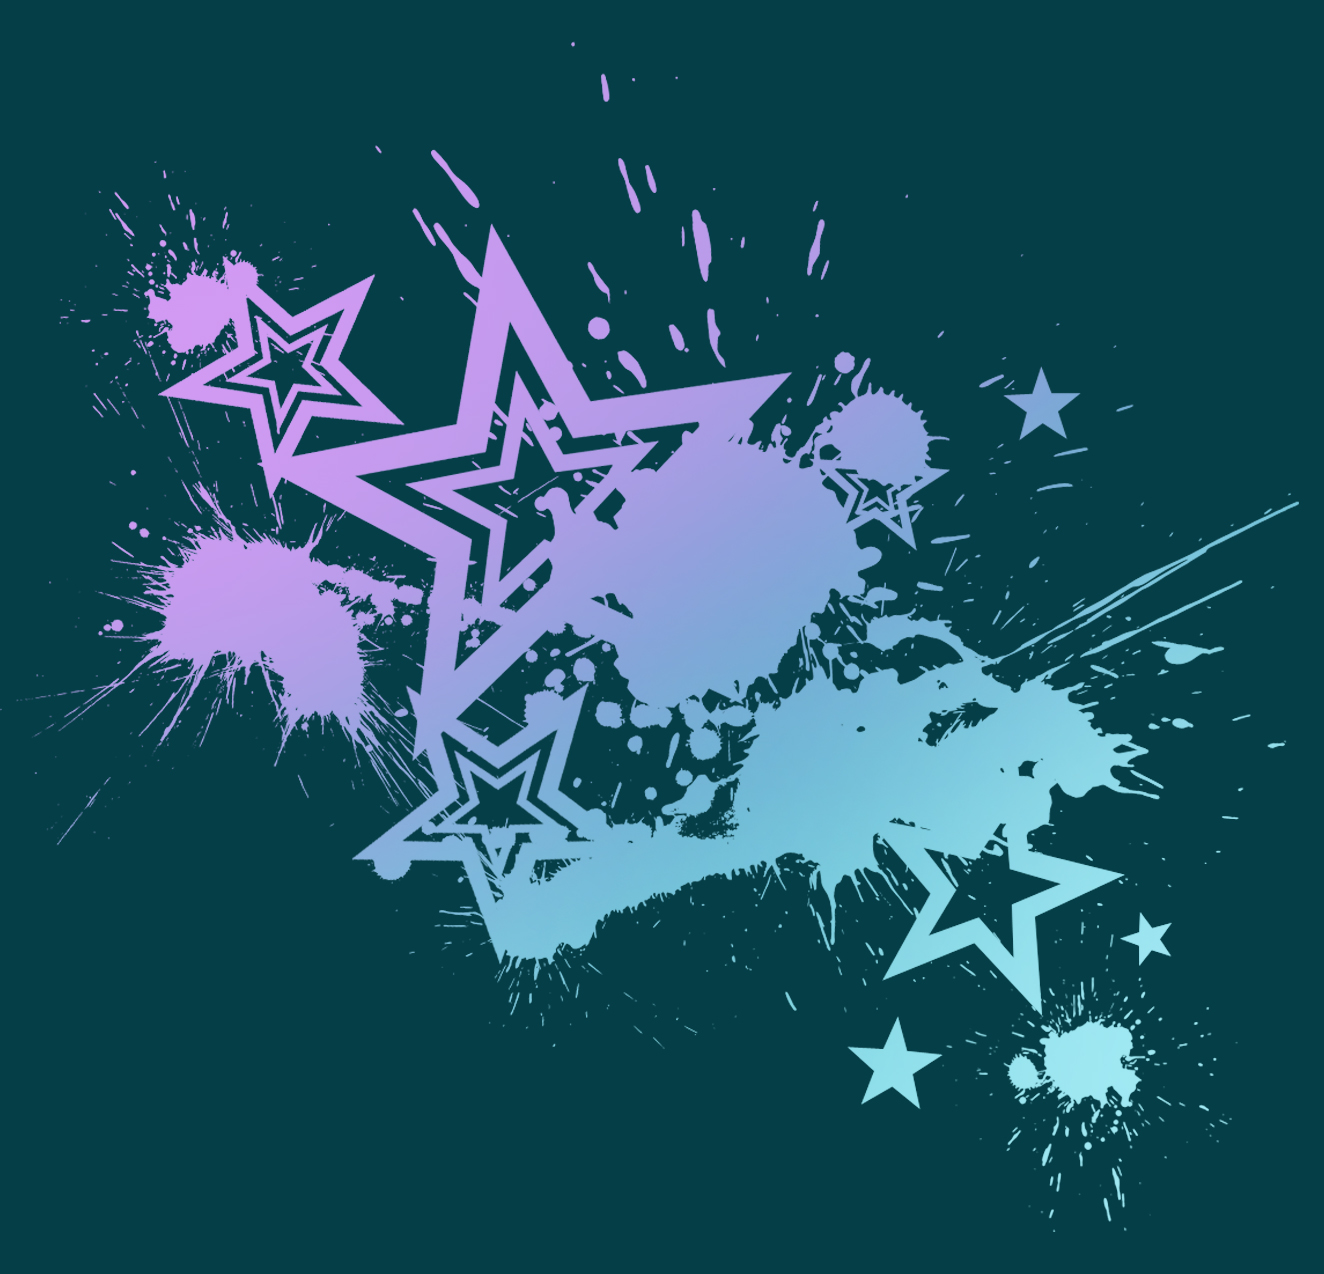 Star Splatter